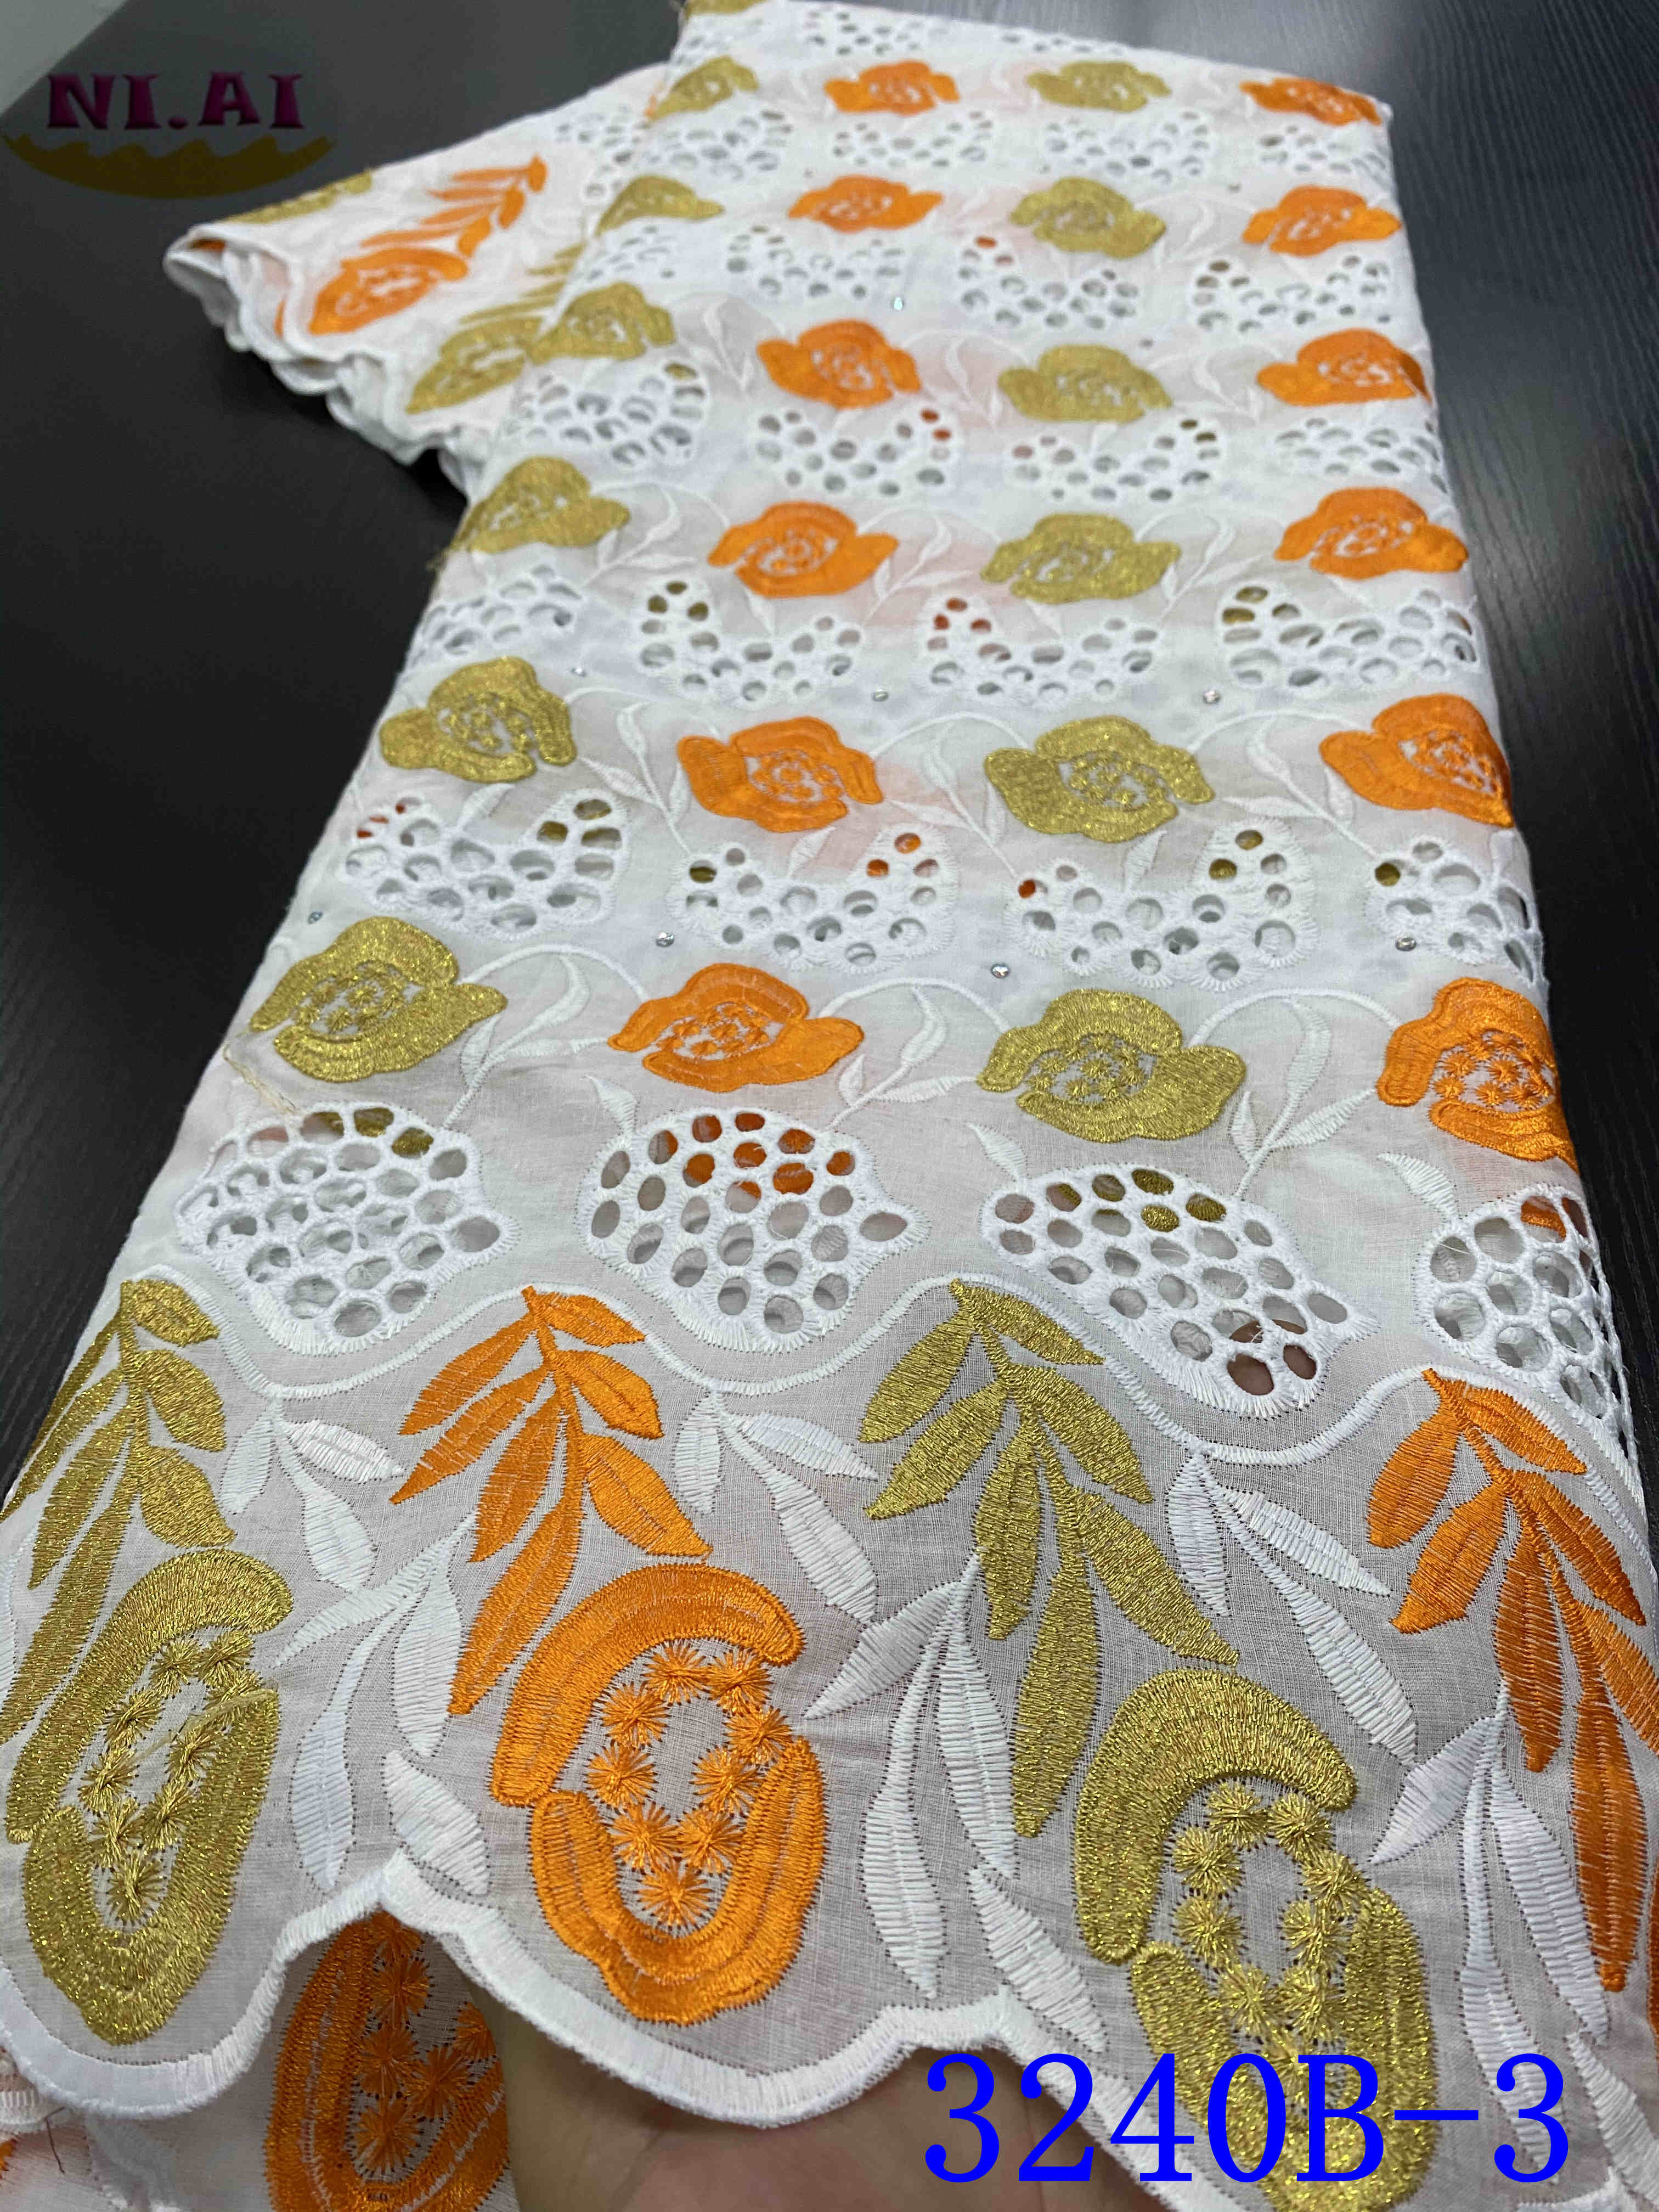 White Voile Lace In Switzerland French Cotton Lace Fabric African Lace Fabric Nigerian Lace Fabrics For Dress YA3240B-3